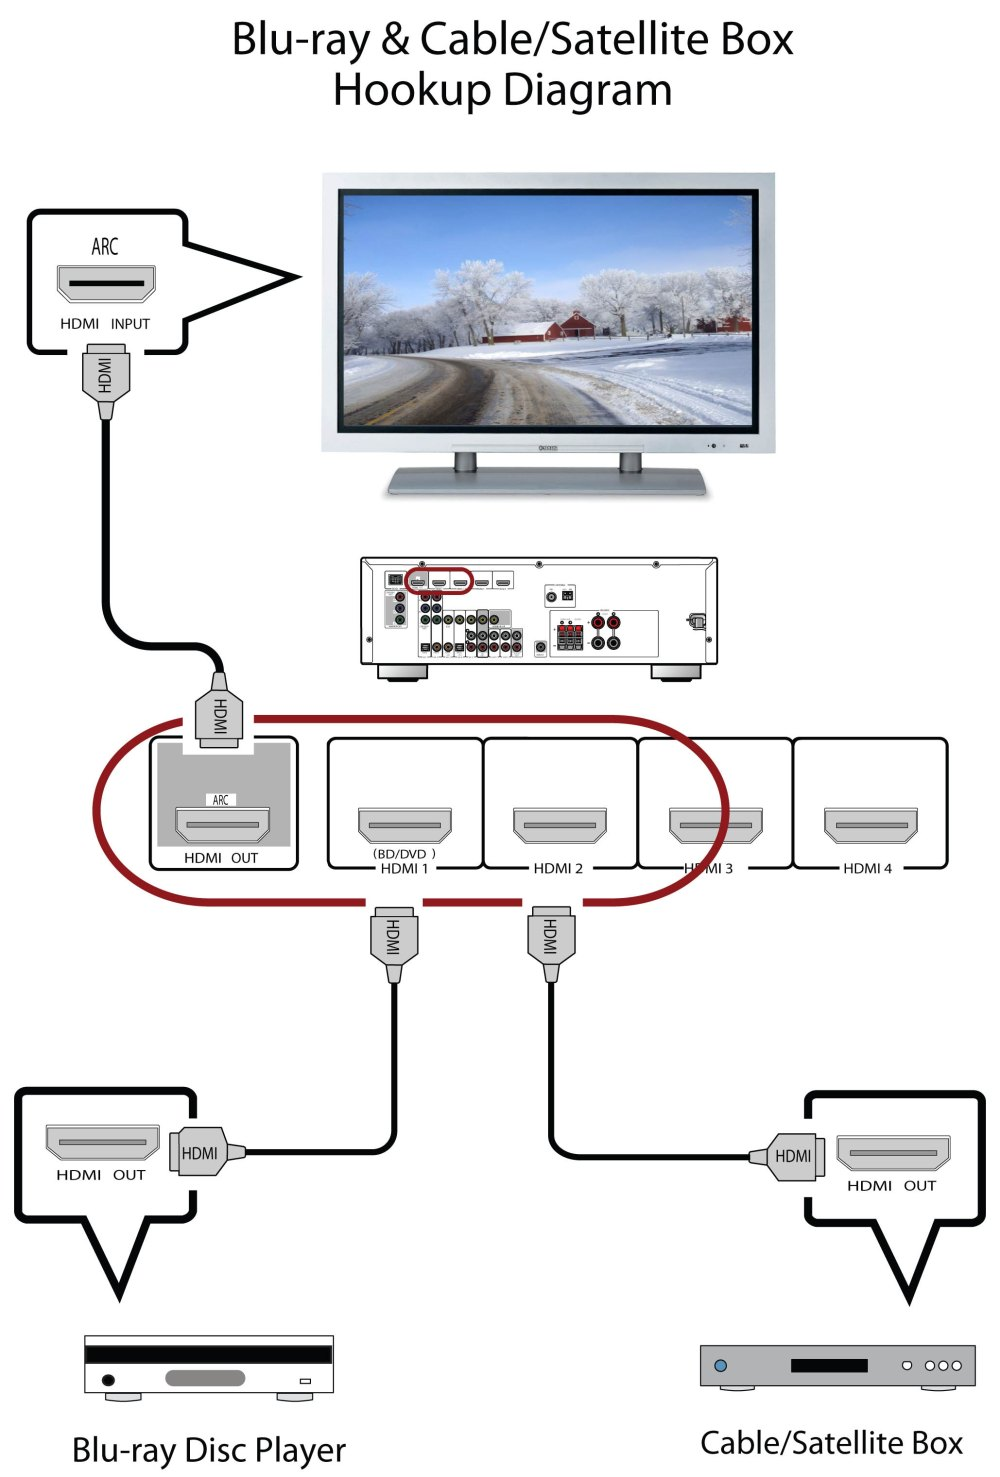 medium resolution of rx v375 blu ray and cable satellite hdmi hookup diagram